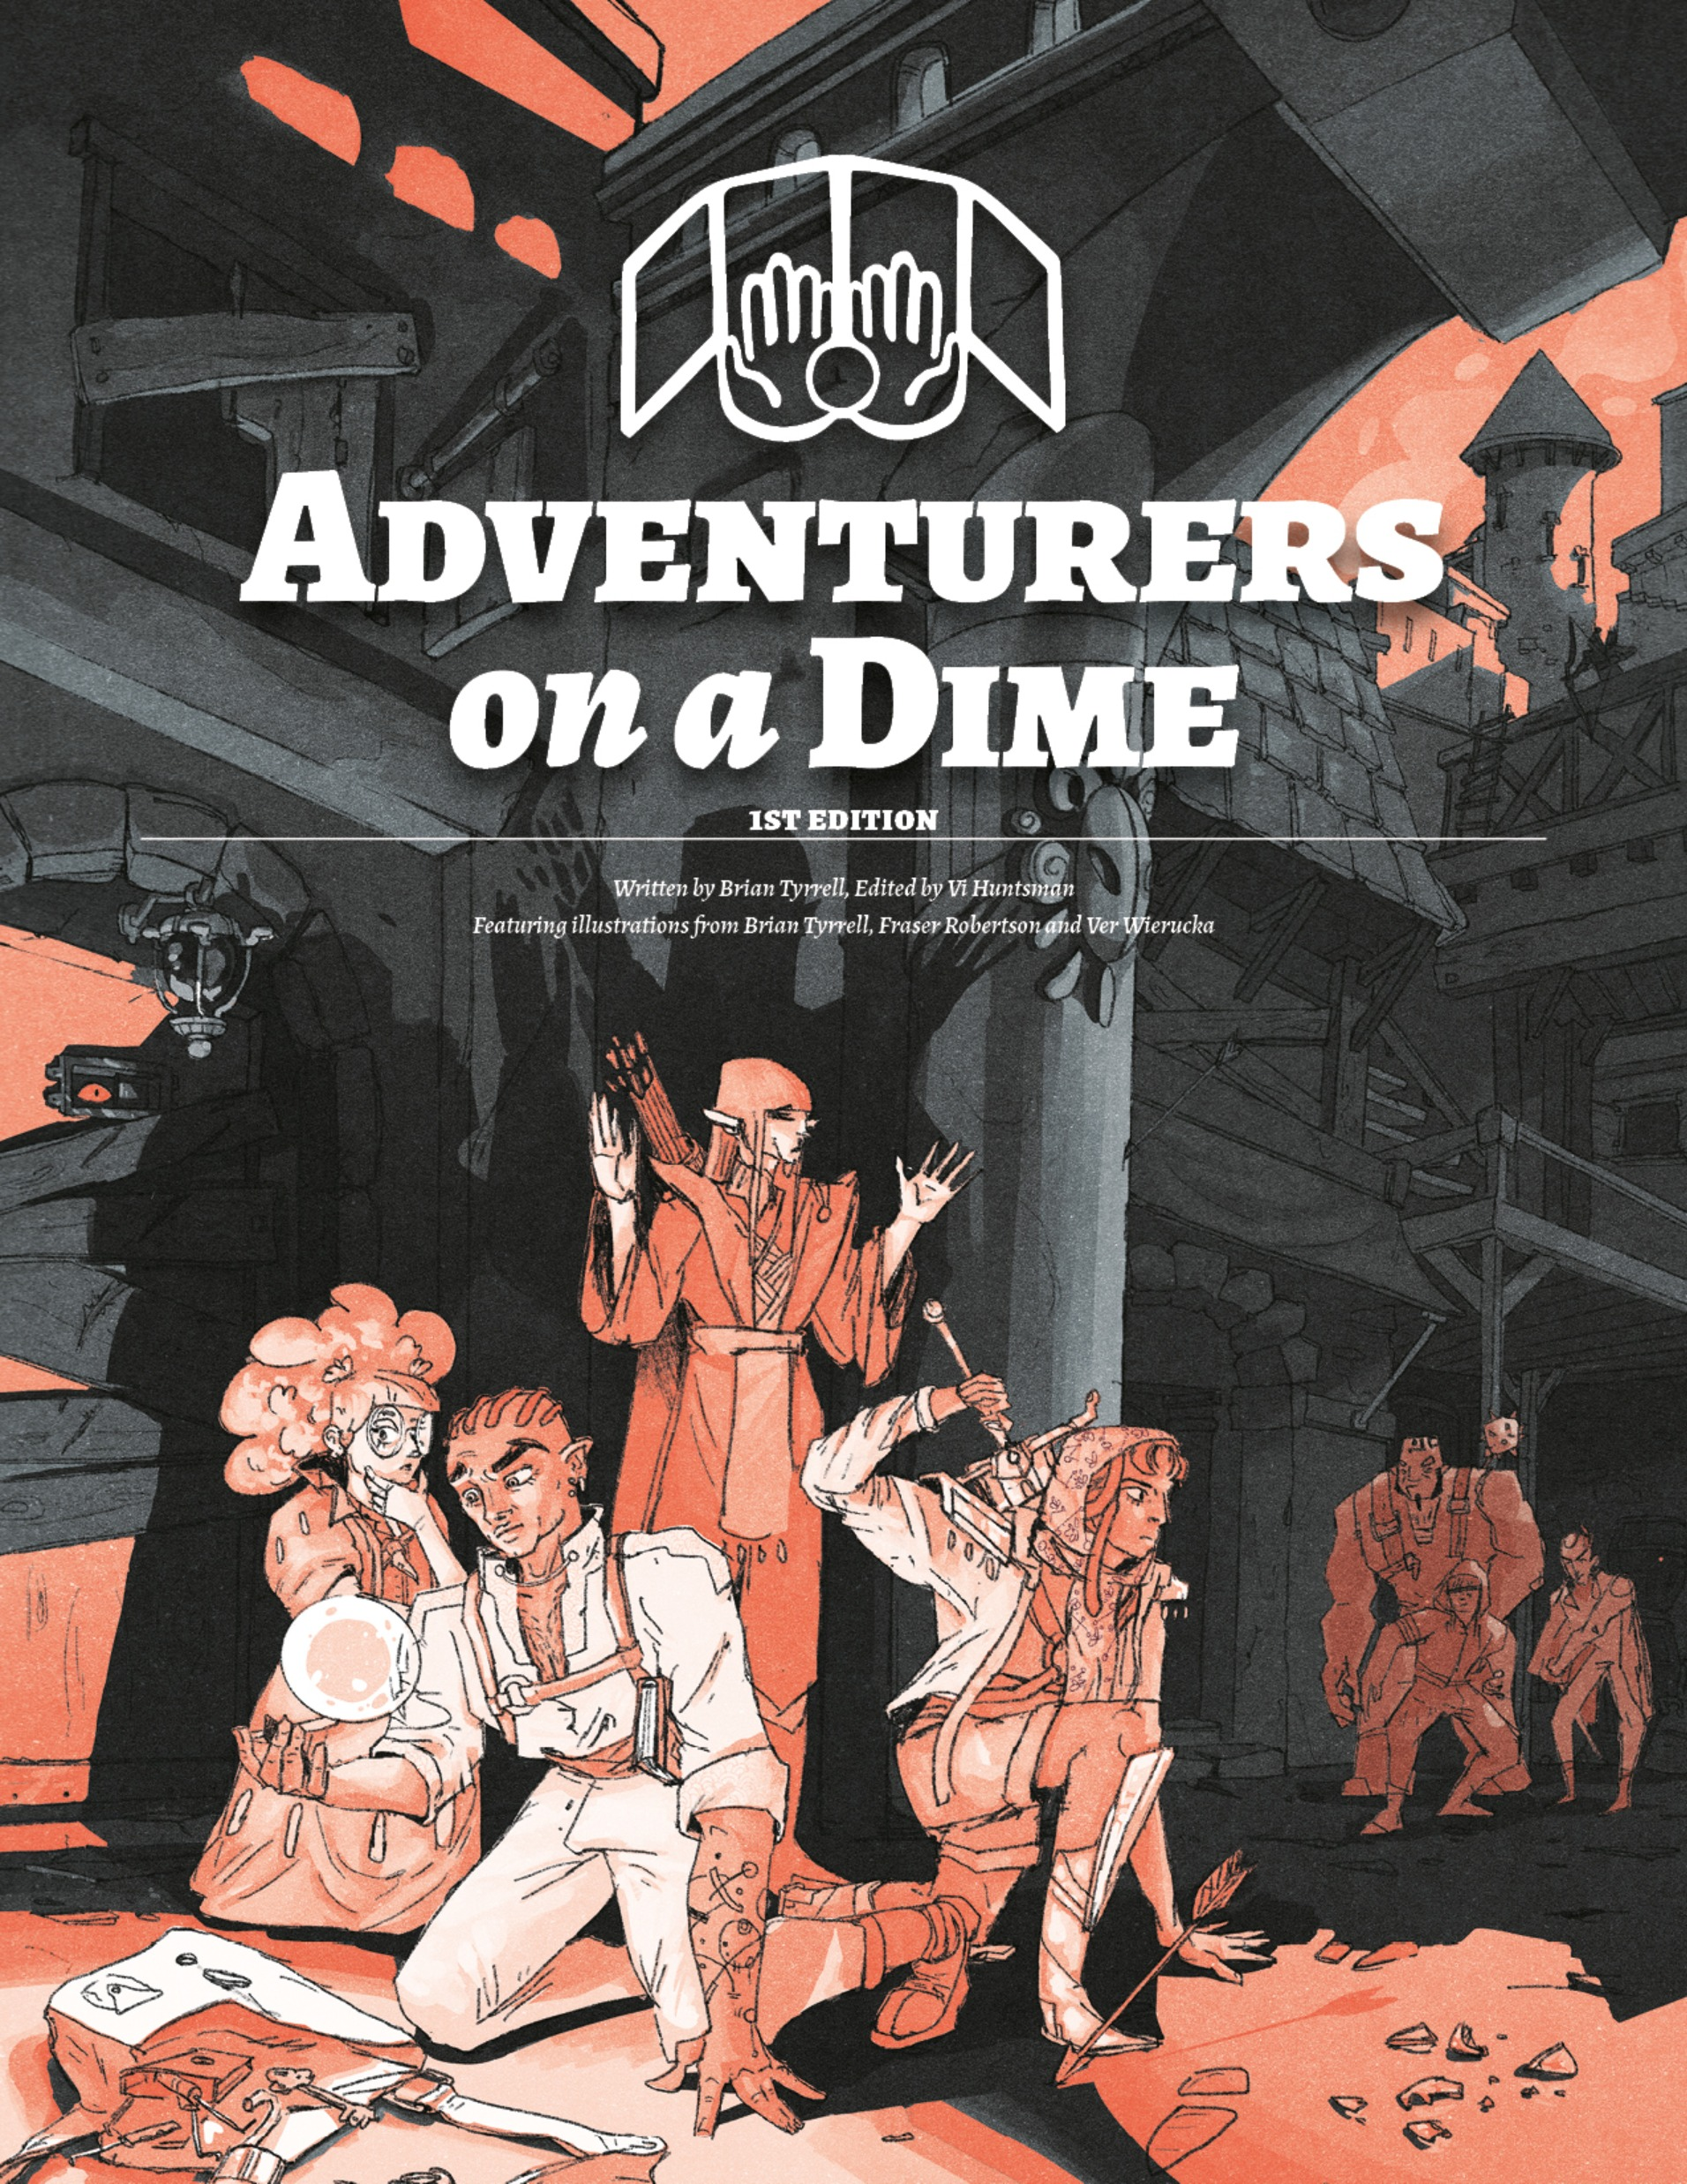 Adventurers on a Dime